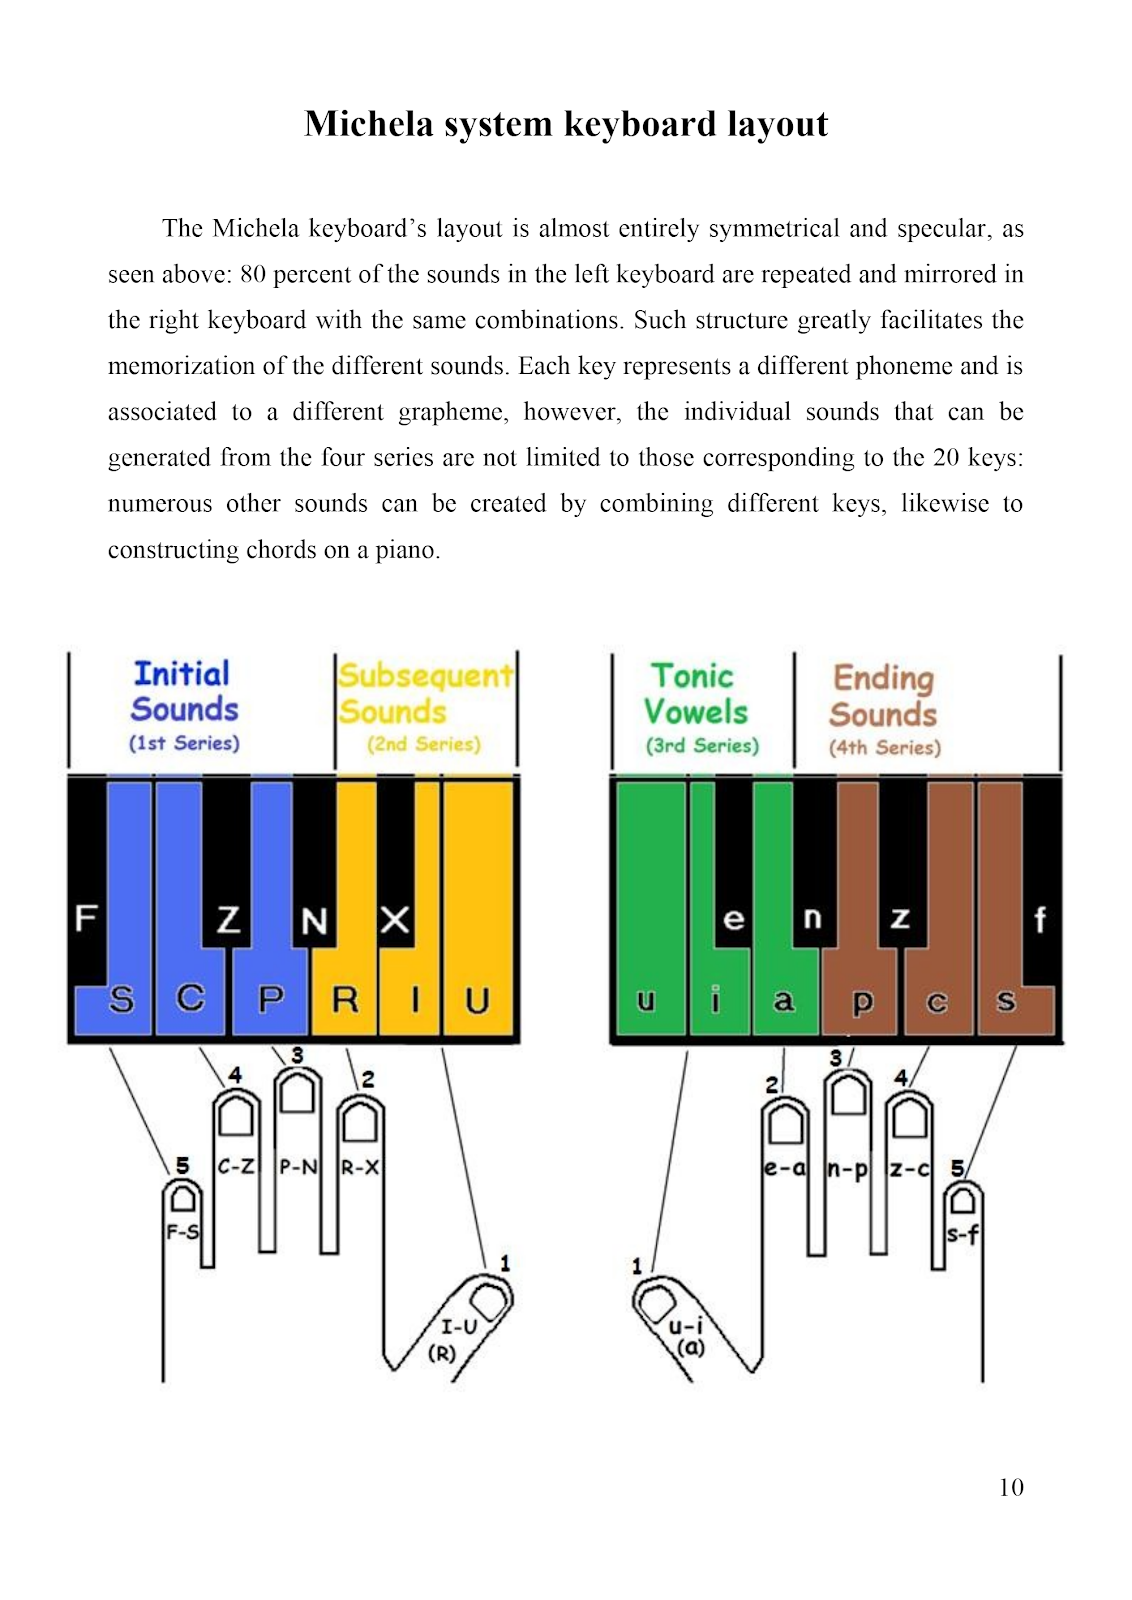 diagram of Michela MIDI keyboard